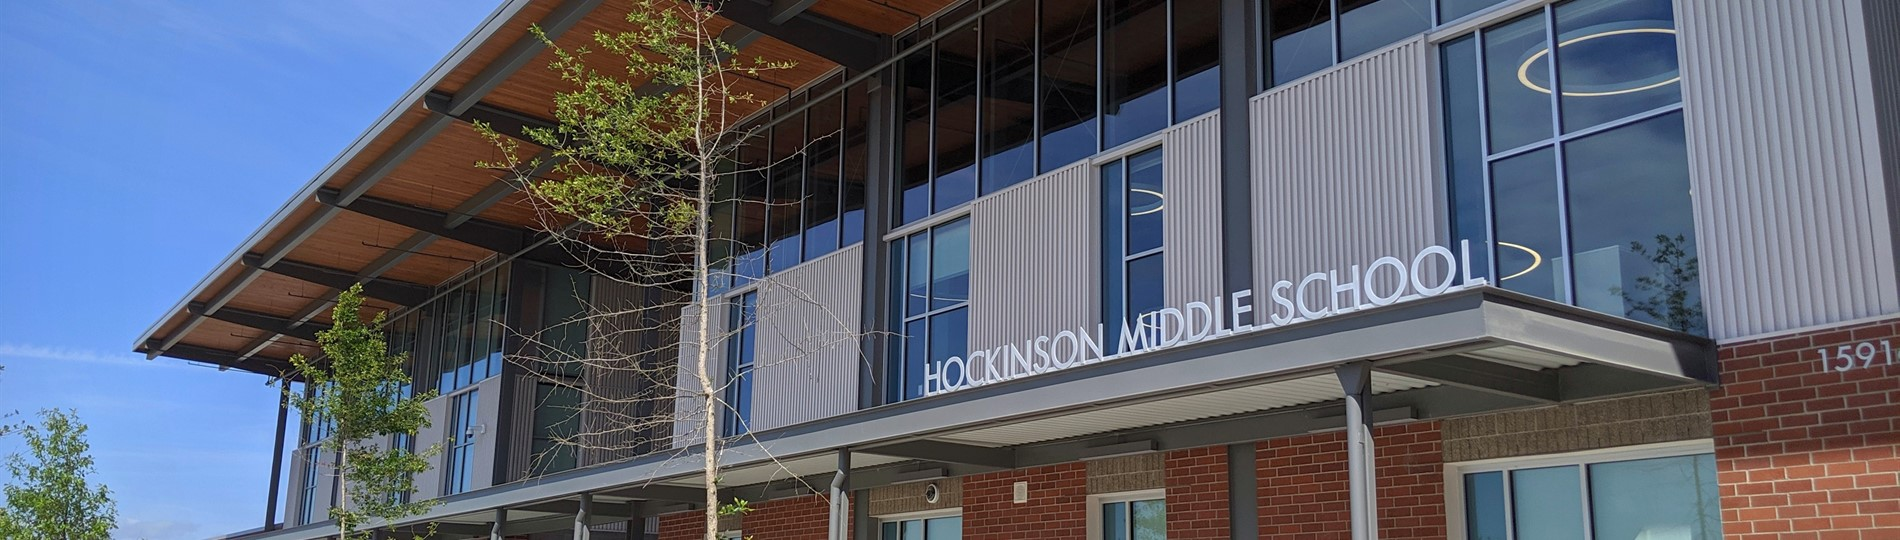 Hockinson Middle School